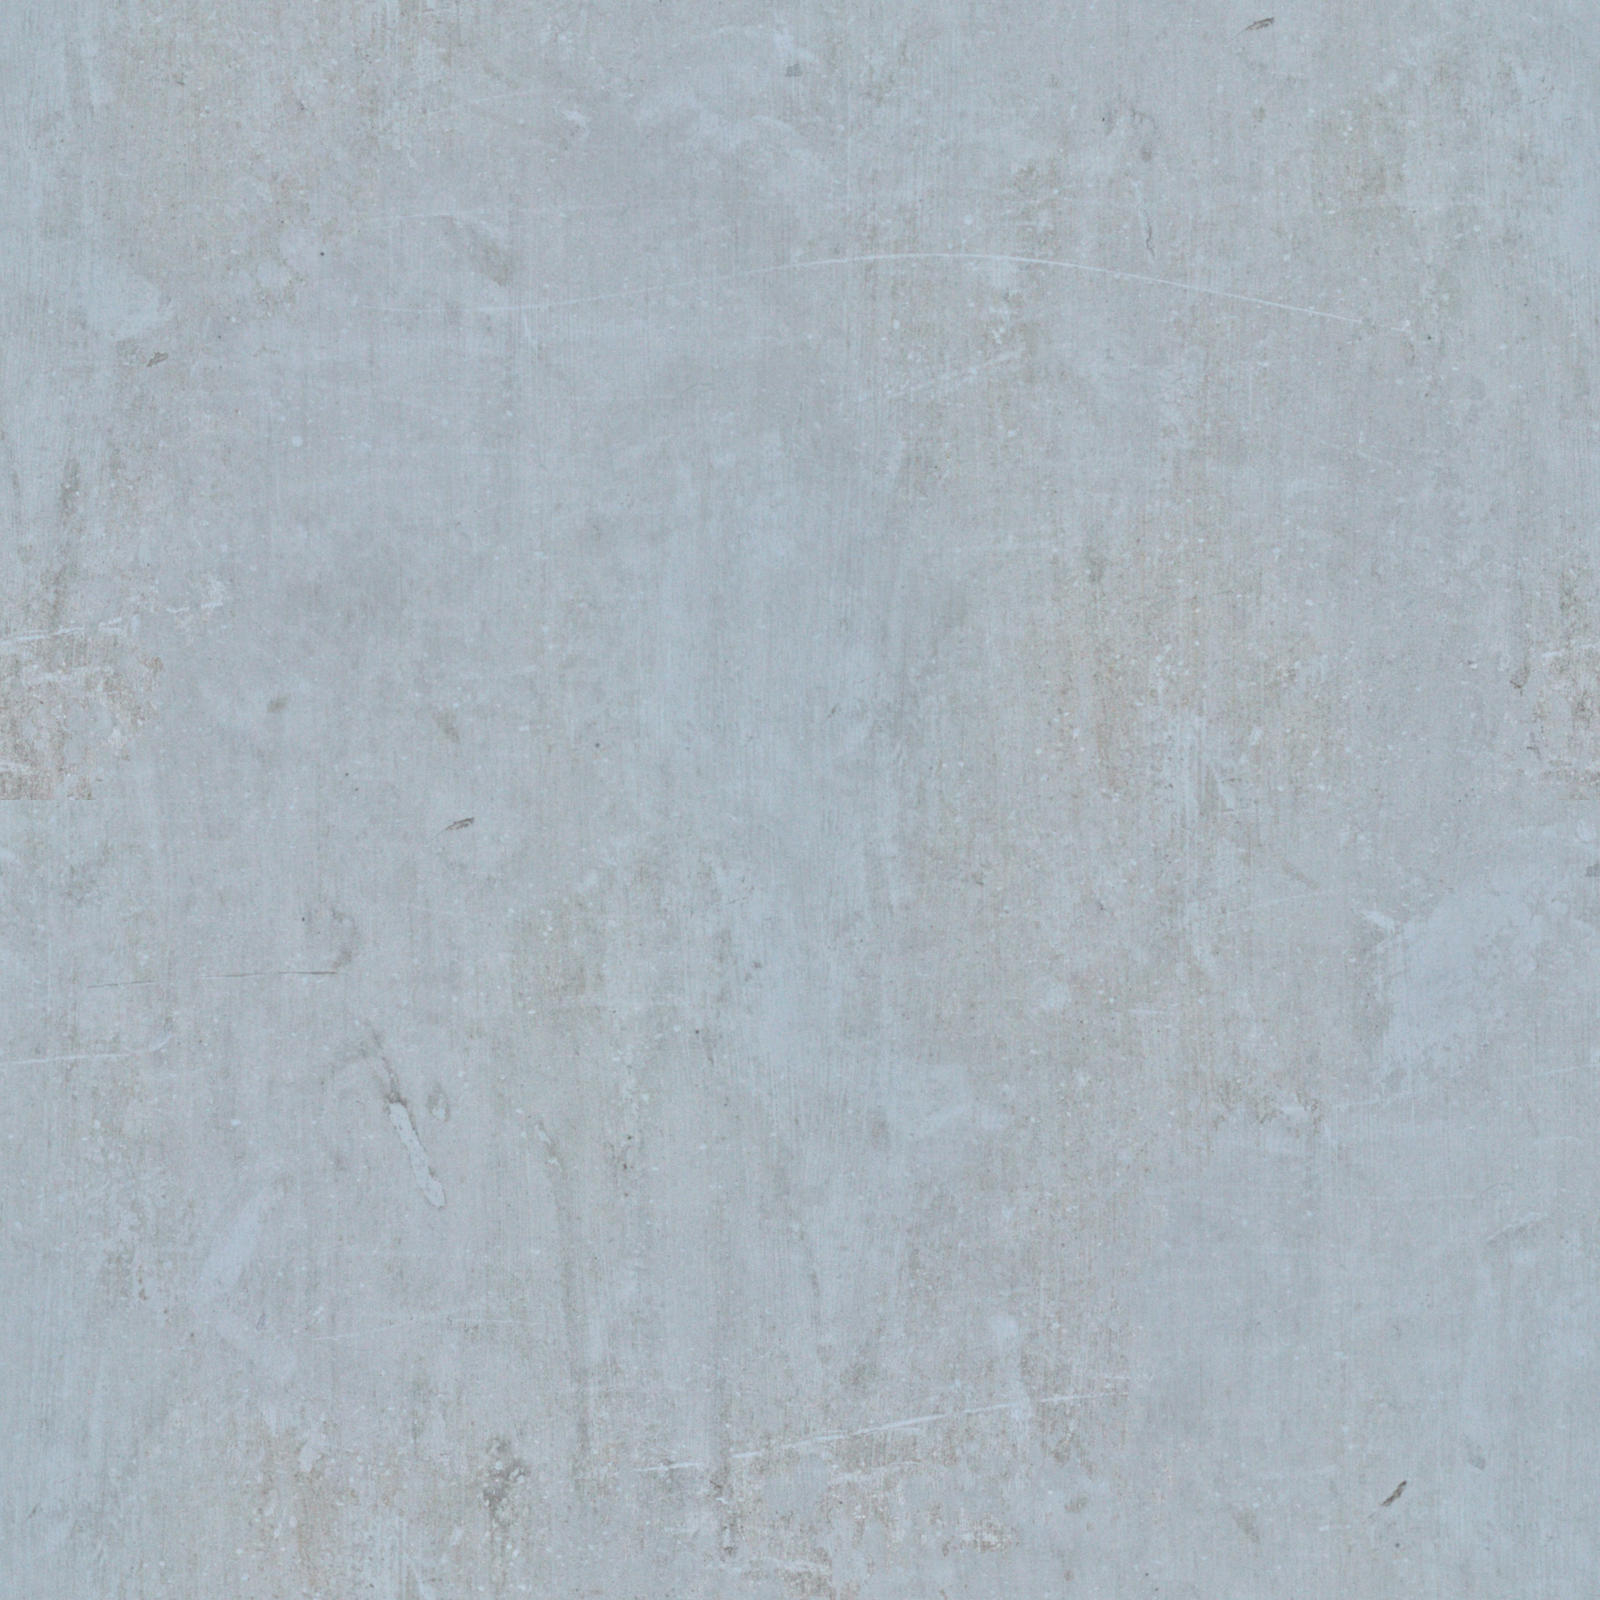 Concrete wall smooth dirty seamless texture 2048x2 by hhh316 on DeviantArt